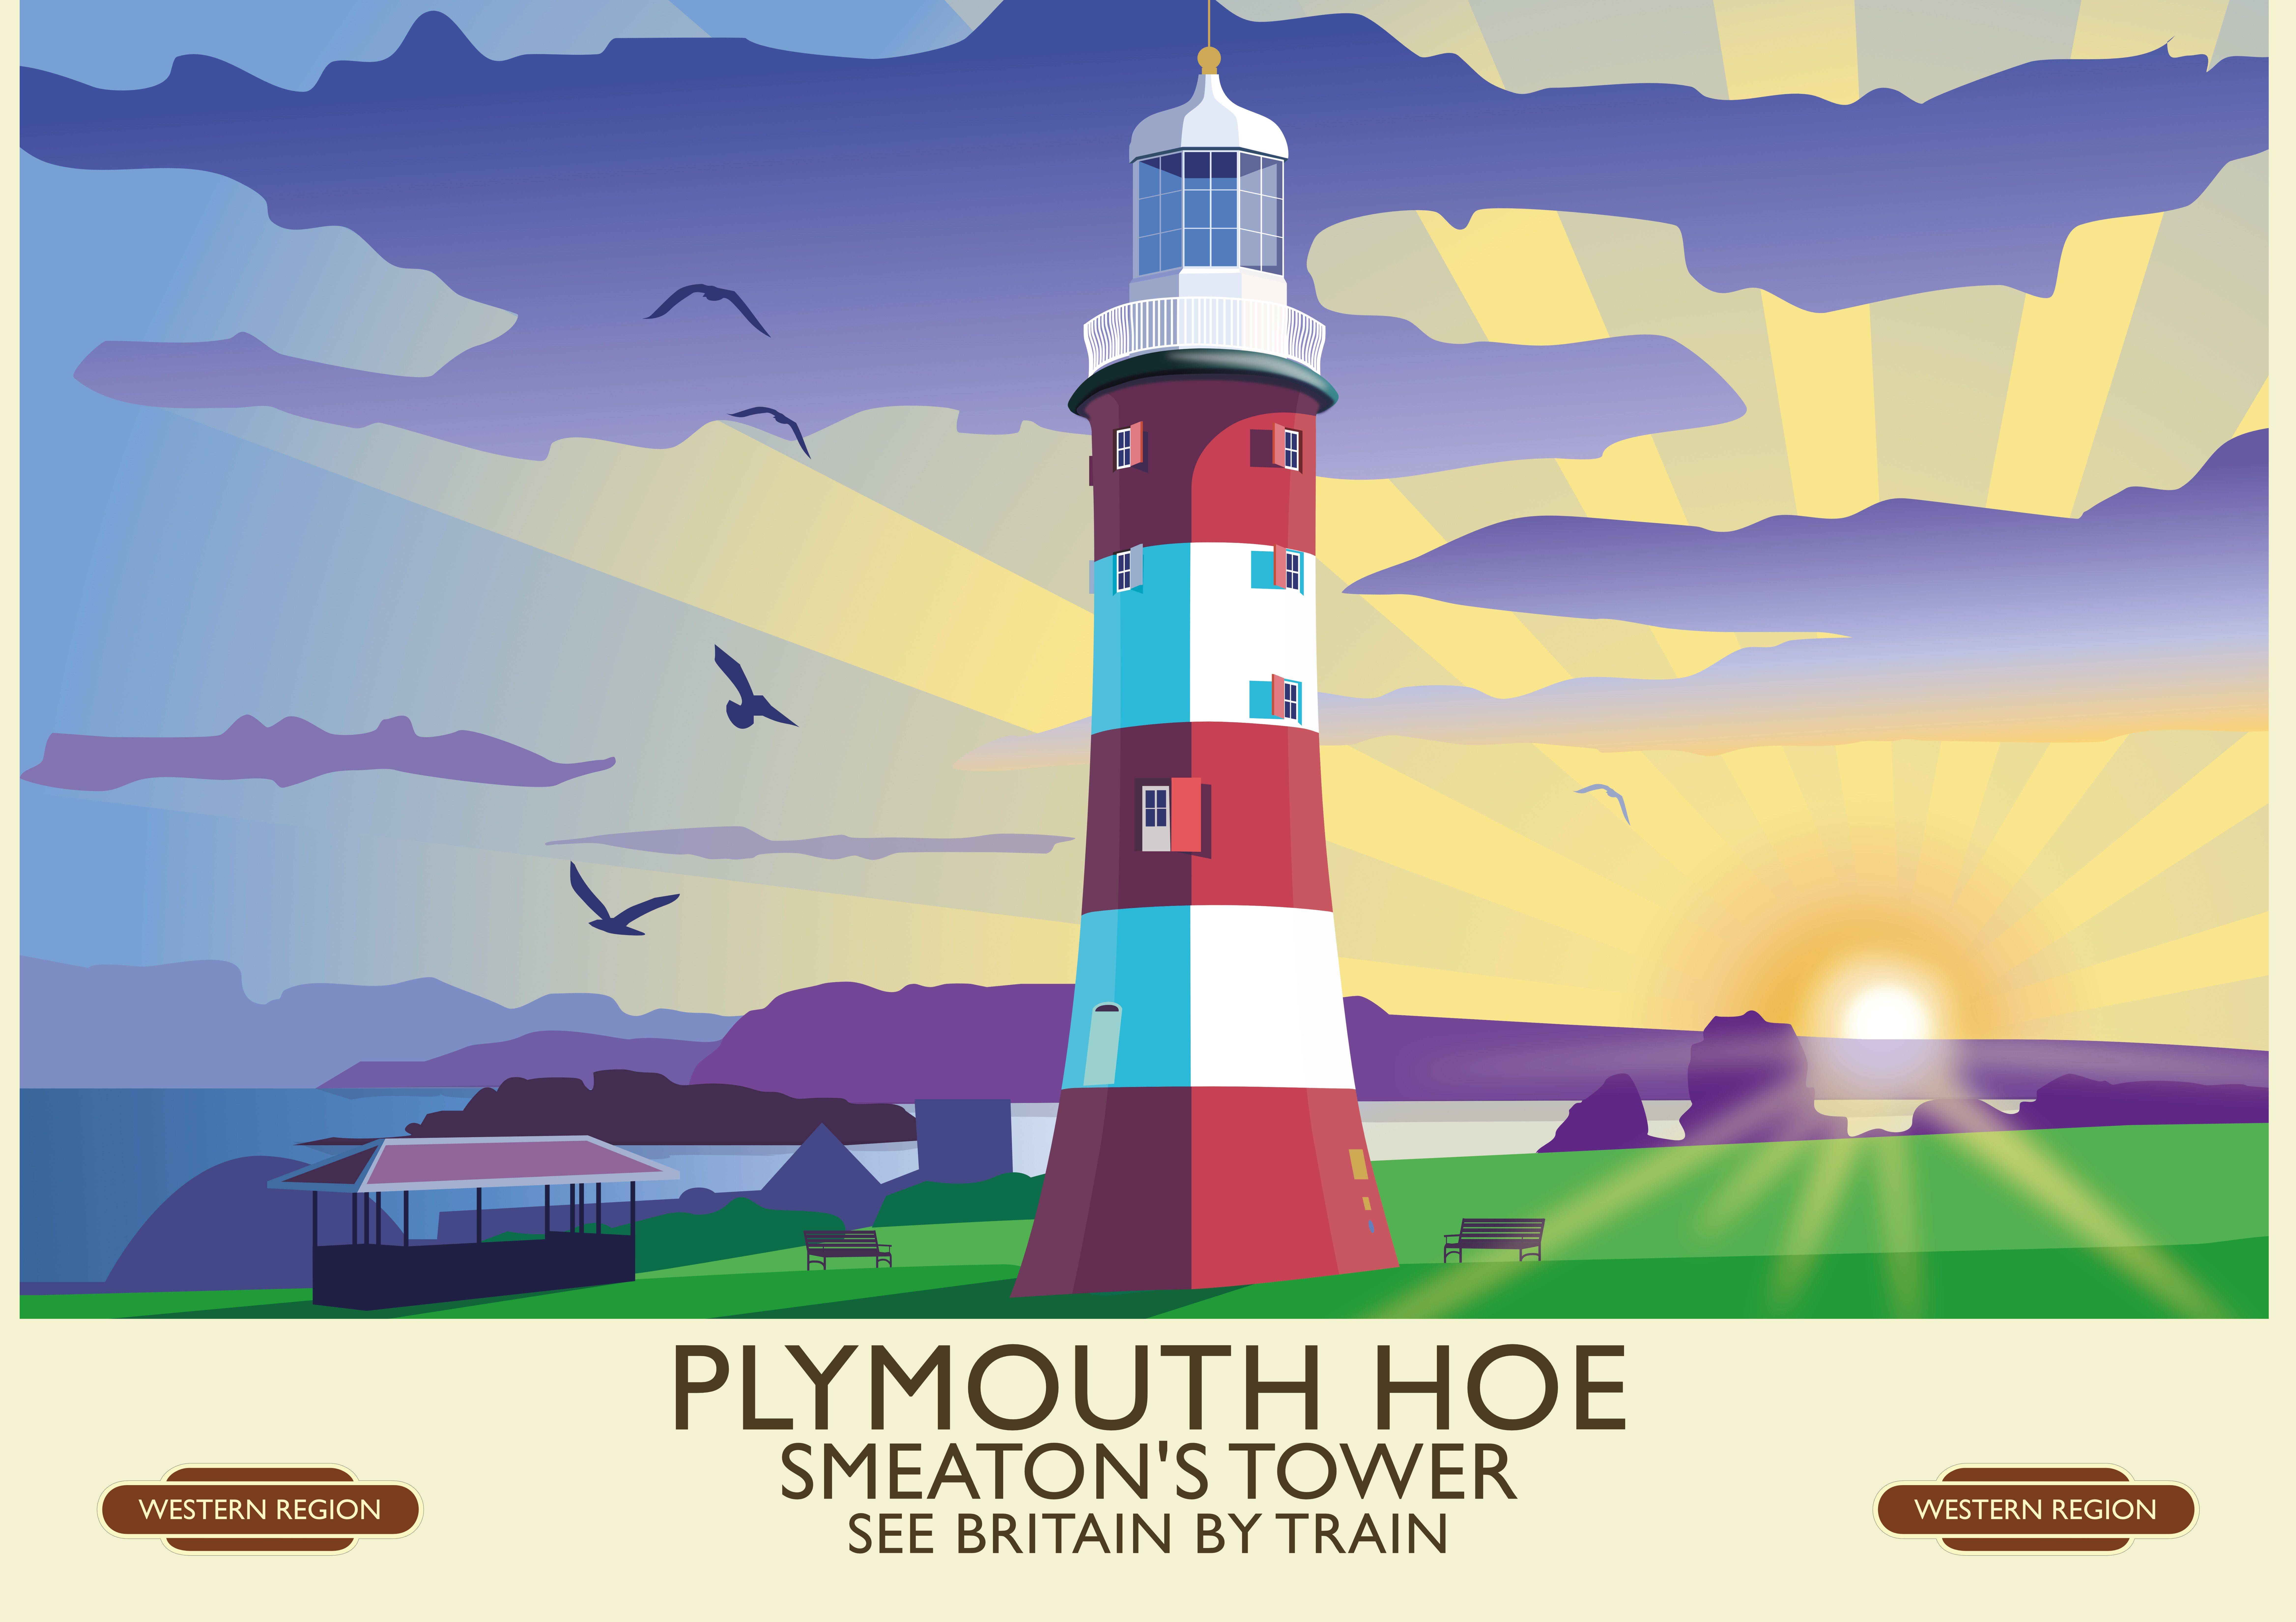 Plymouth Hoe Vintage Railway Poster by Mike Turton | Railway posters ...